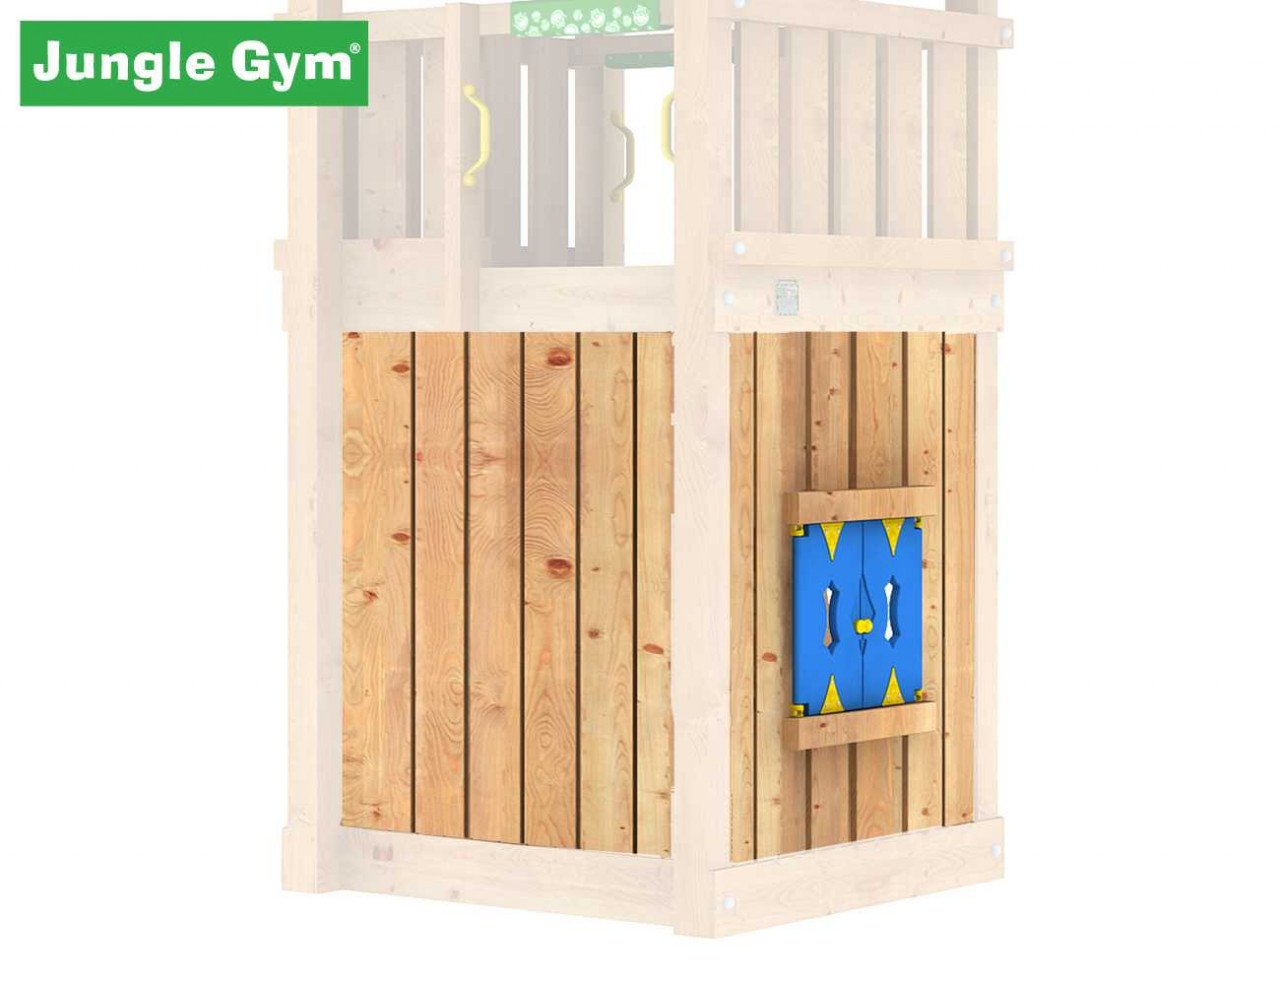 Jungle Gym Playhouse-Modul, Spielhaus-Modul in Douglasie natur